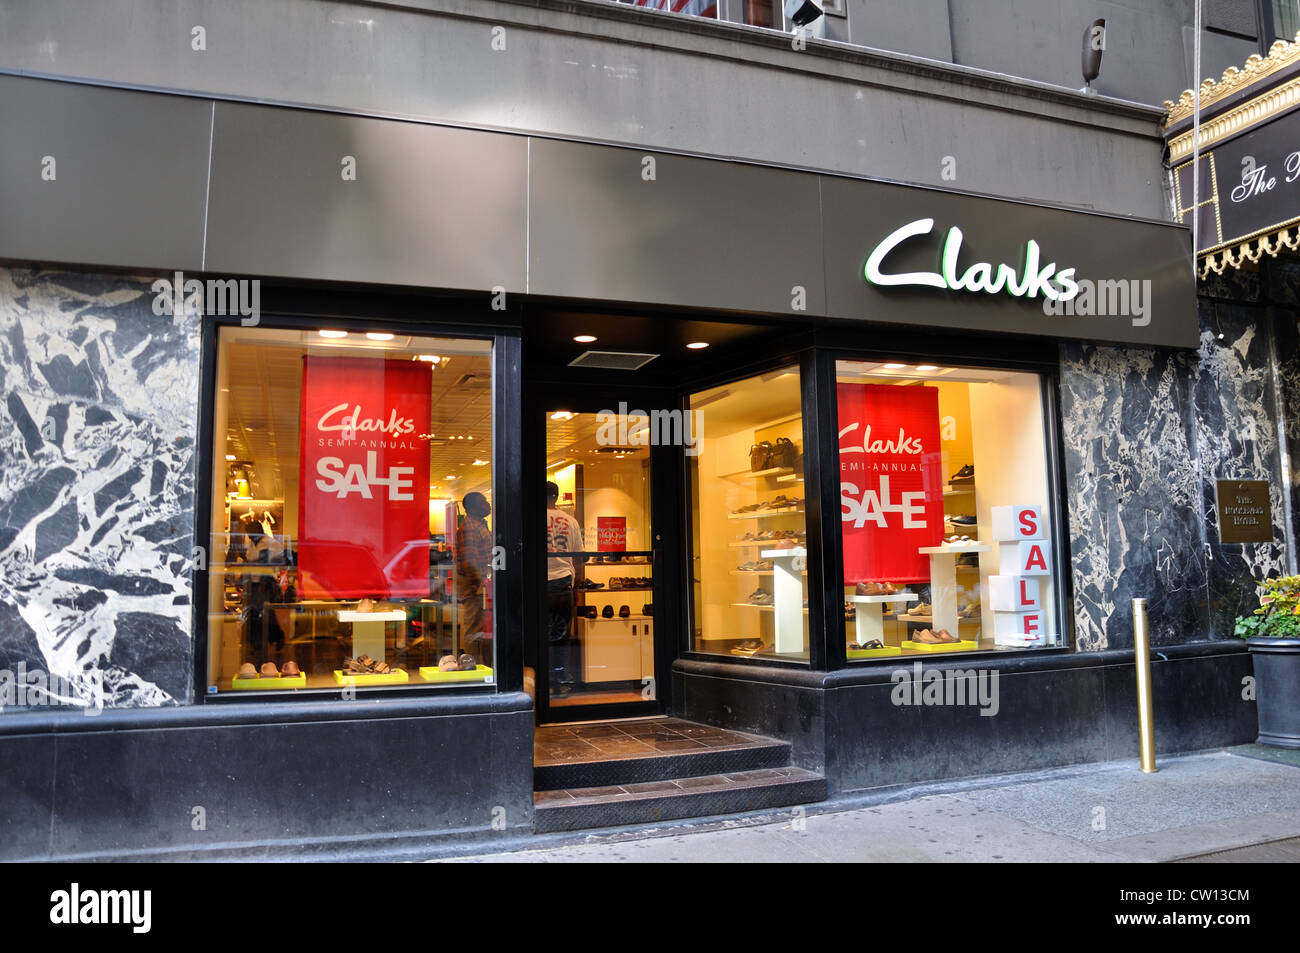 Macy's - FREE Shipping at saiholtiorgot.tk Macy's has the latest fashion brands on Women's and Men's Clothing, Accessories, Jewelry, Beauty, Shoes and Home Products.